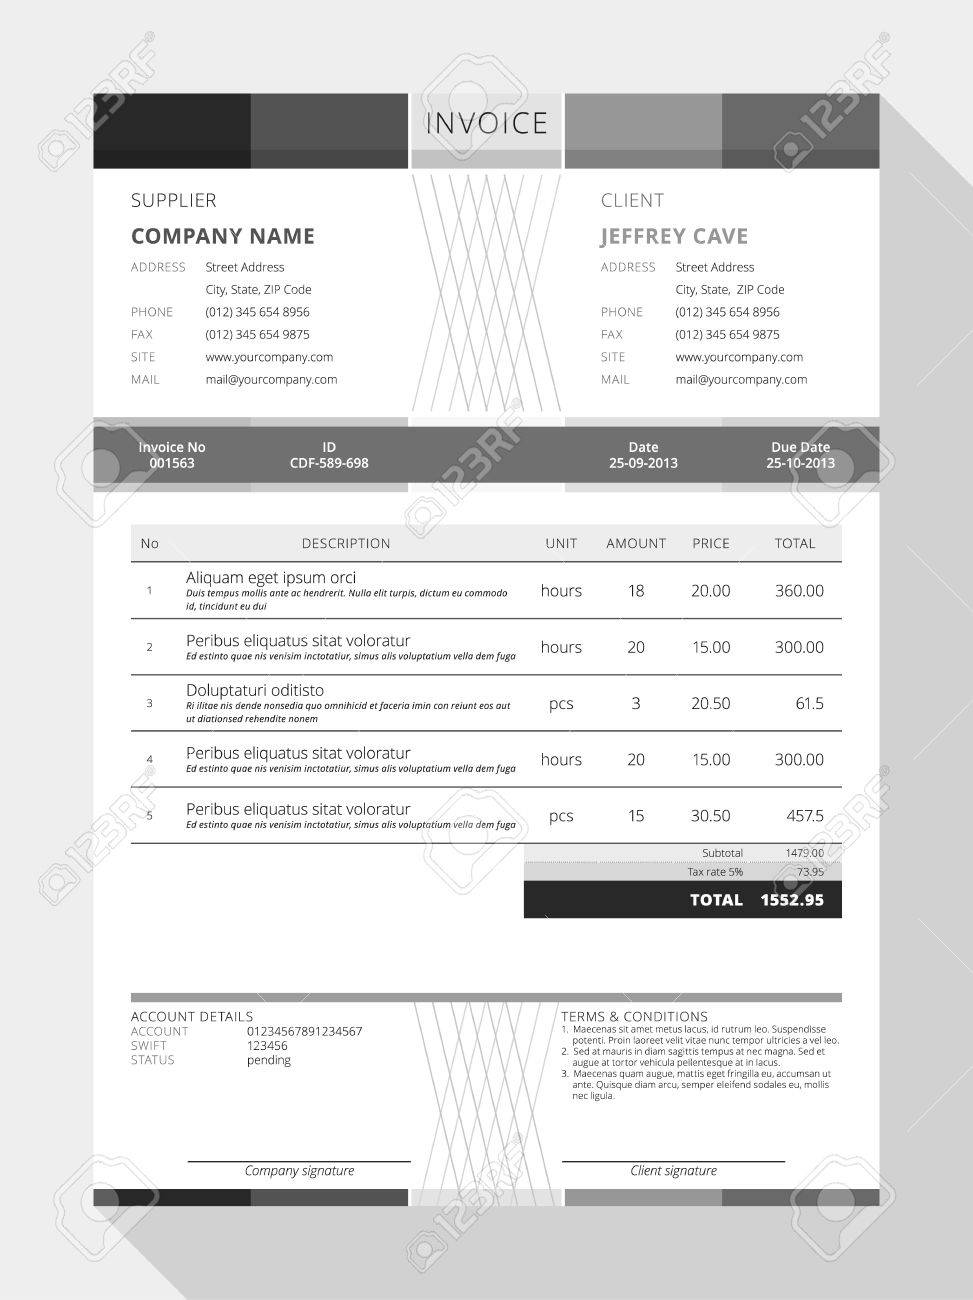 Maidofhonortoastus  Pleasant Design An Invoice  Professional Graphic Design Invoice  With Glamorous Vector Customizable Invoice Form Template Design Vector   Design An Invoice With Endearing Uscis Receipt Number Also Crm Invoice In Addition Invoices Format And Receipt Organizer As Well As Cash Receipt Additionally Receipt Printer From Happytomco With Maidofhonortoastus  Glamorous Design An Invoice  Professional Graphic Design Invoice  With Endearing Vector Customizable Invoice Form Template Design Vector   Design An Invoice And Pleasant Uscis Receipt Number Also Crm Invoice In Addition Invoices Format From Happytomco